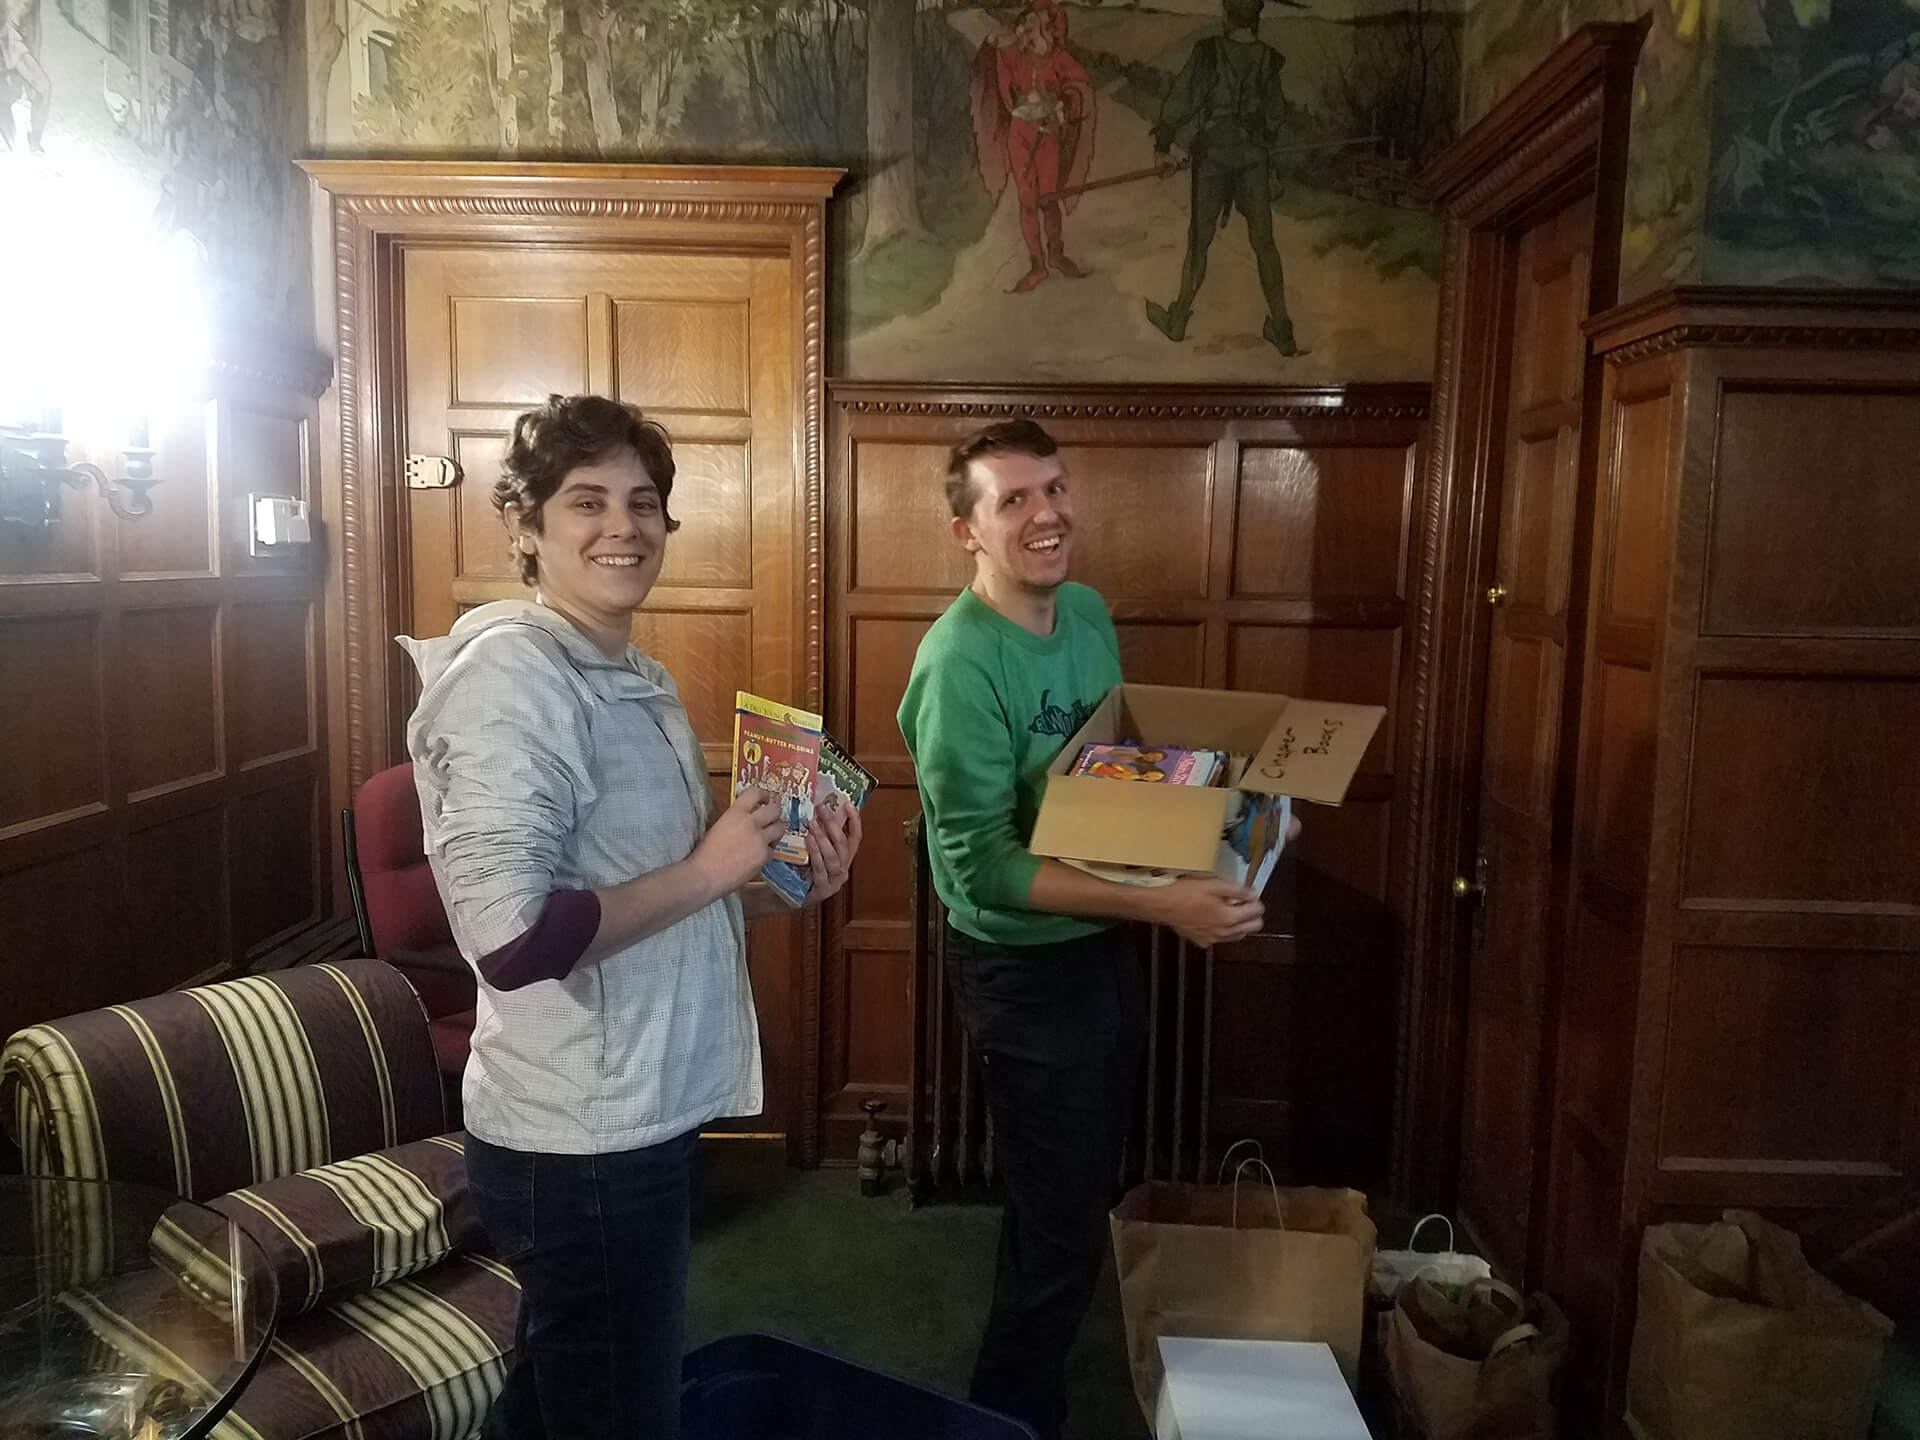 Two people with books in their hands smiling